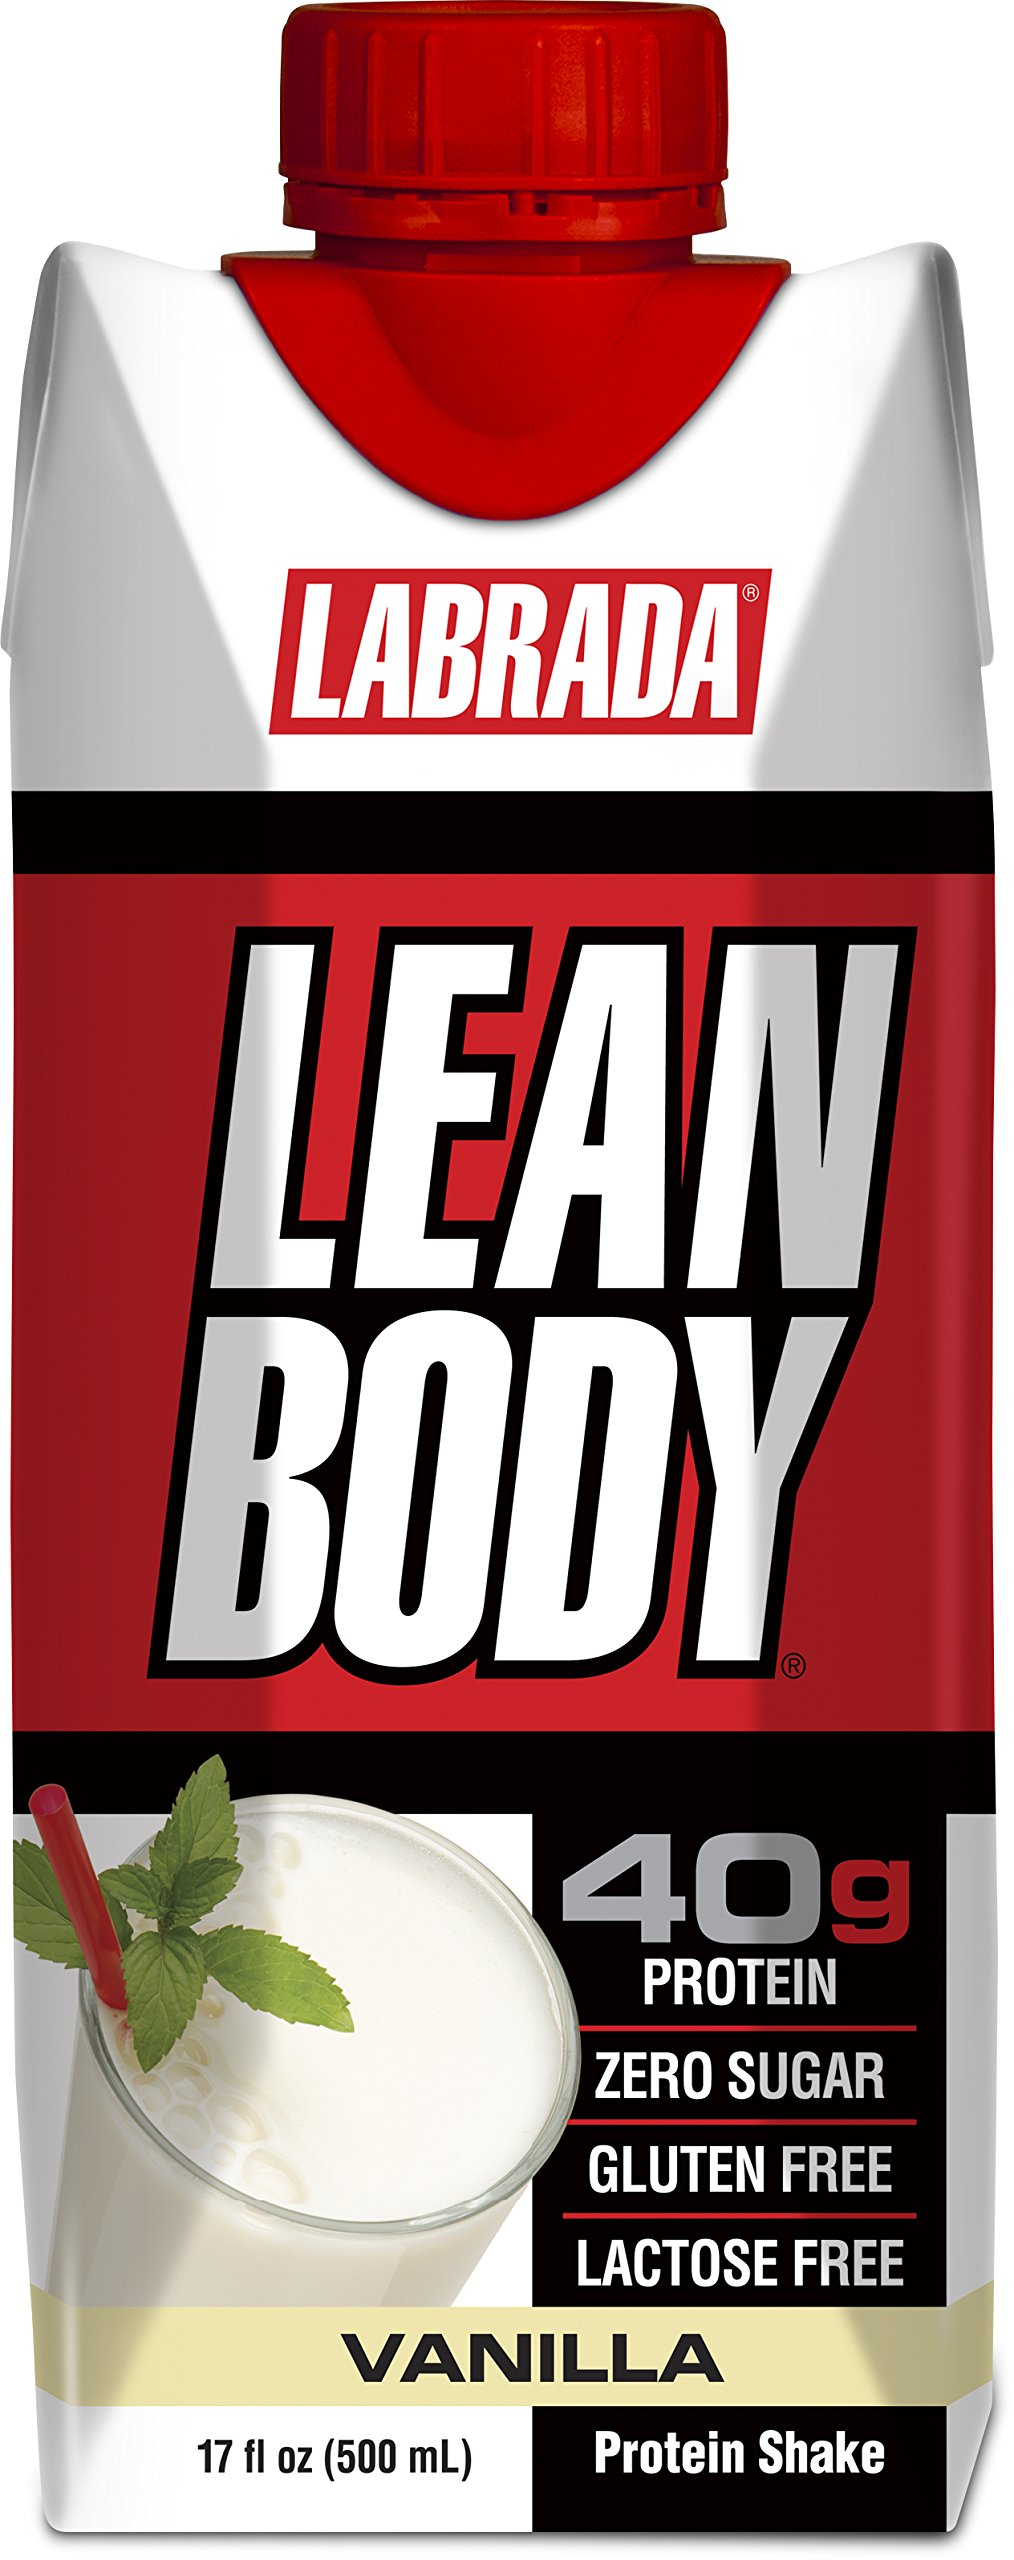 LABRADA - Lean Body Ready To Drink Whey Protein Shake, Convenient On-The-Go Meal Replacement Shake for Men & Women, 40 grams of Protein – Zero Sugar, Lactose & Gluten Free, Vanilla (Pack of 12)